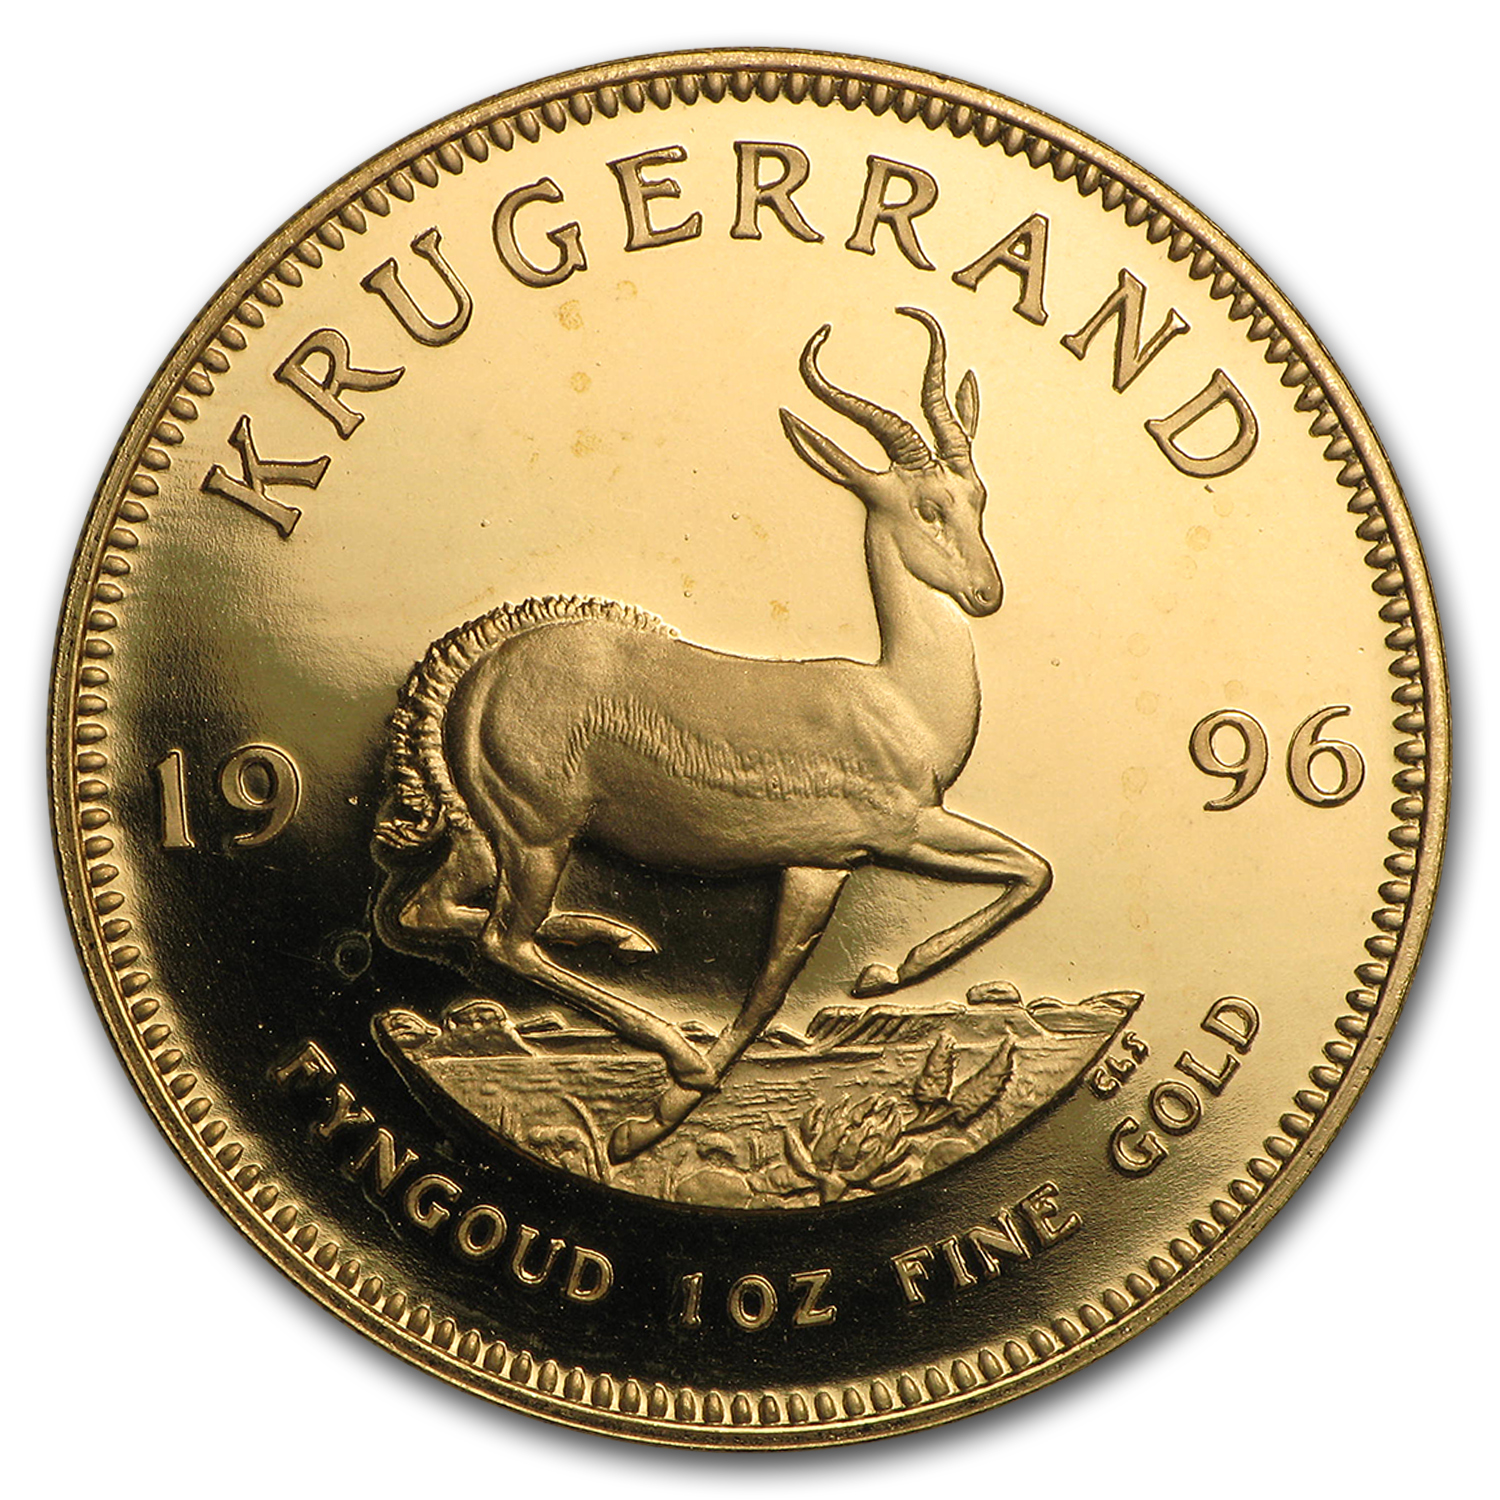 1996 South Africa 1 oz Proof Gold Krugerrand